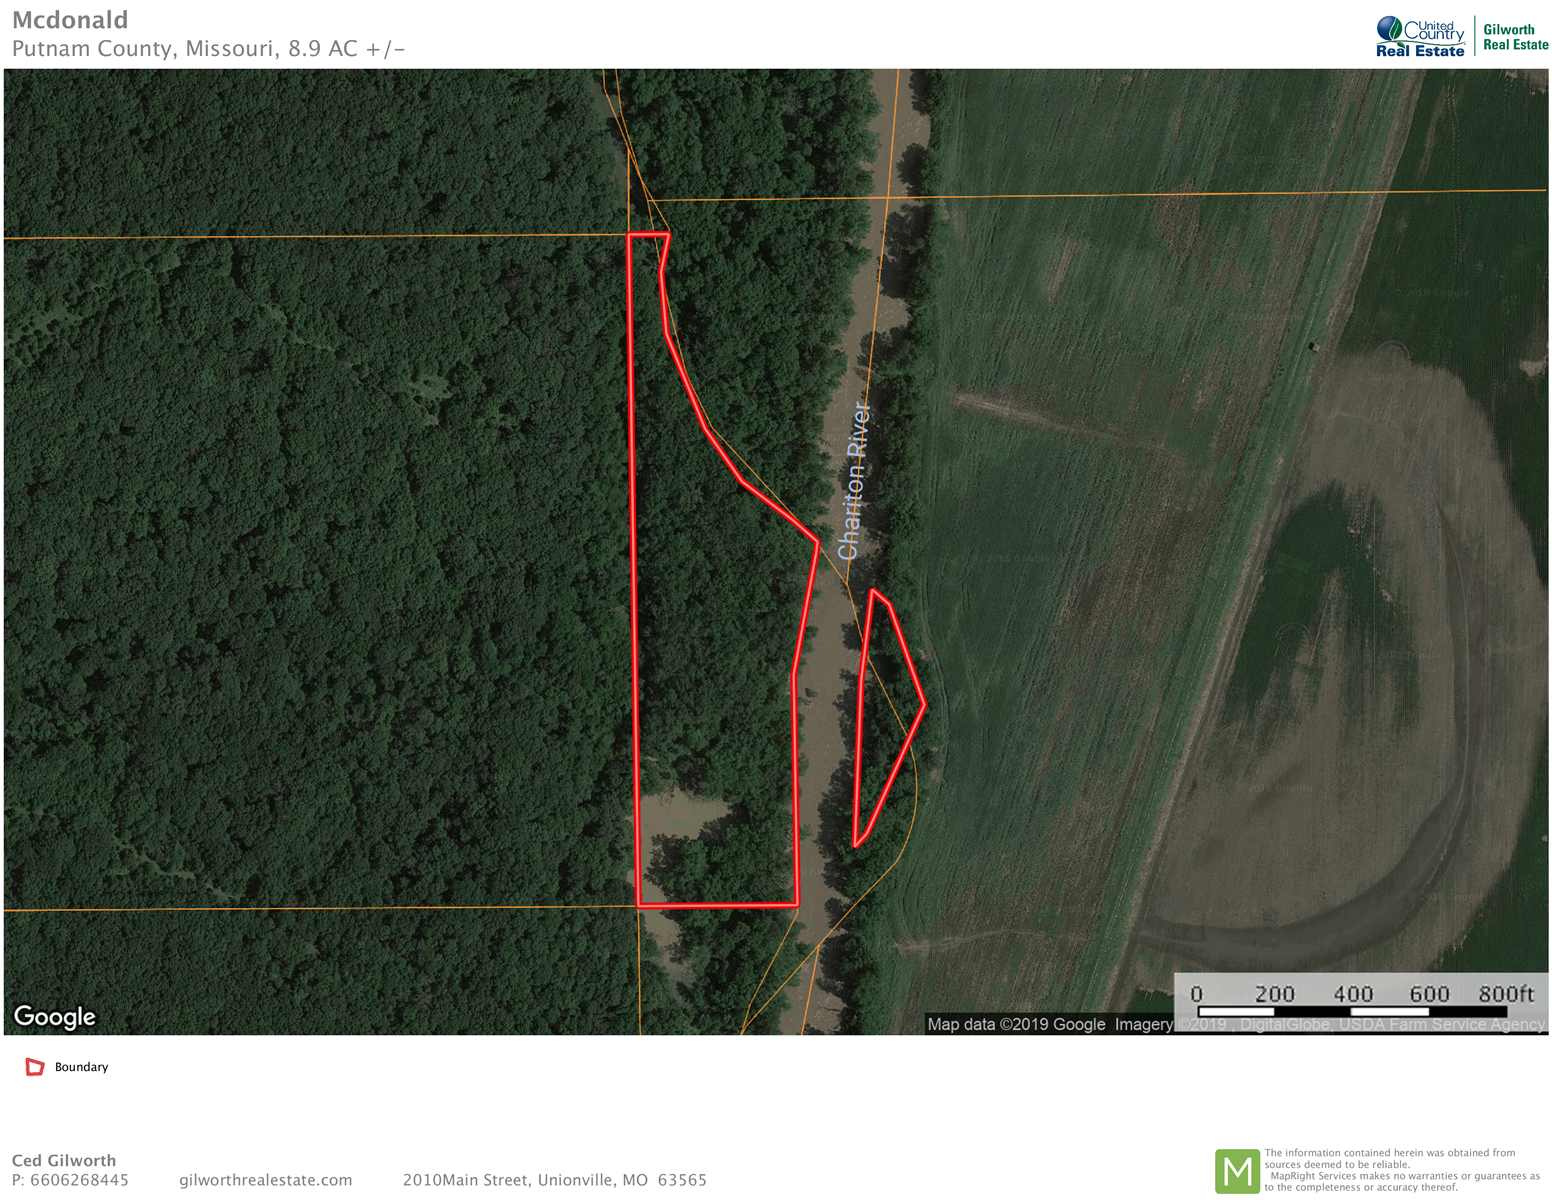 Timber acreage for sale in Eastern Putnam County, Missouri